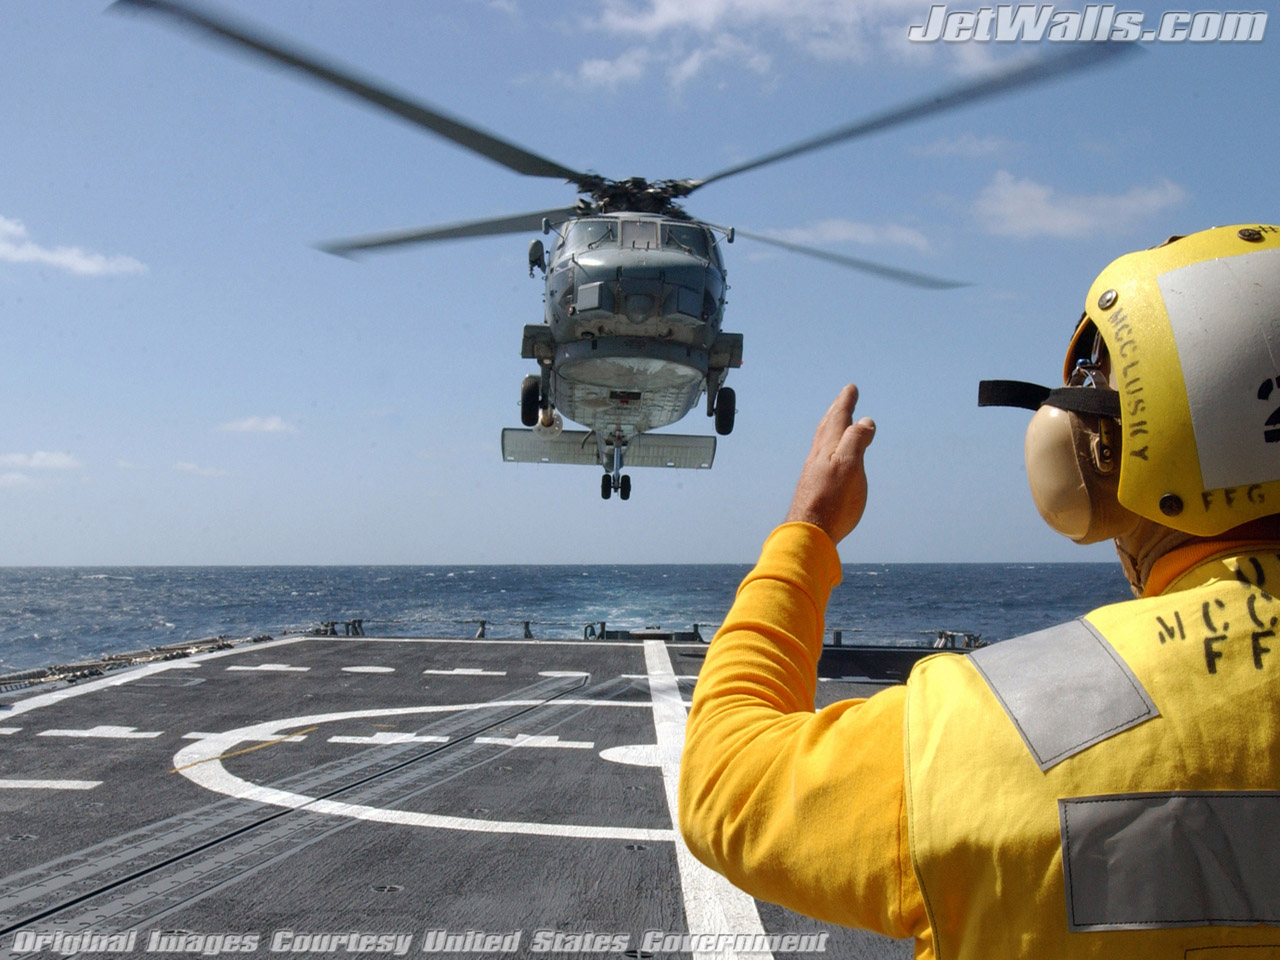 """SH-60B Seahawk"" - Wallpaper No. 55 of 101. Right click for saving options."